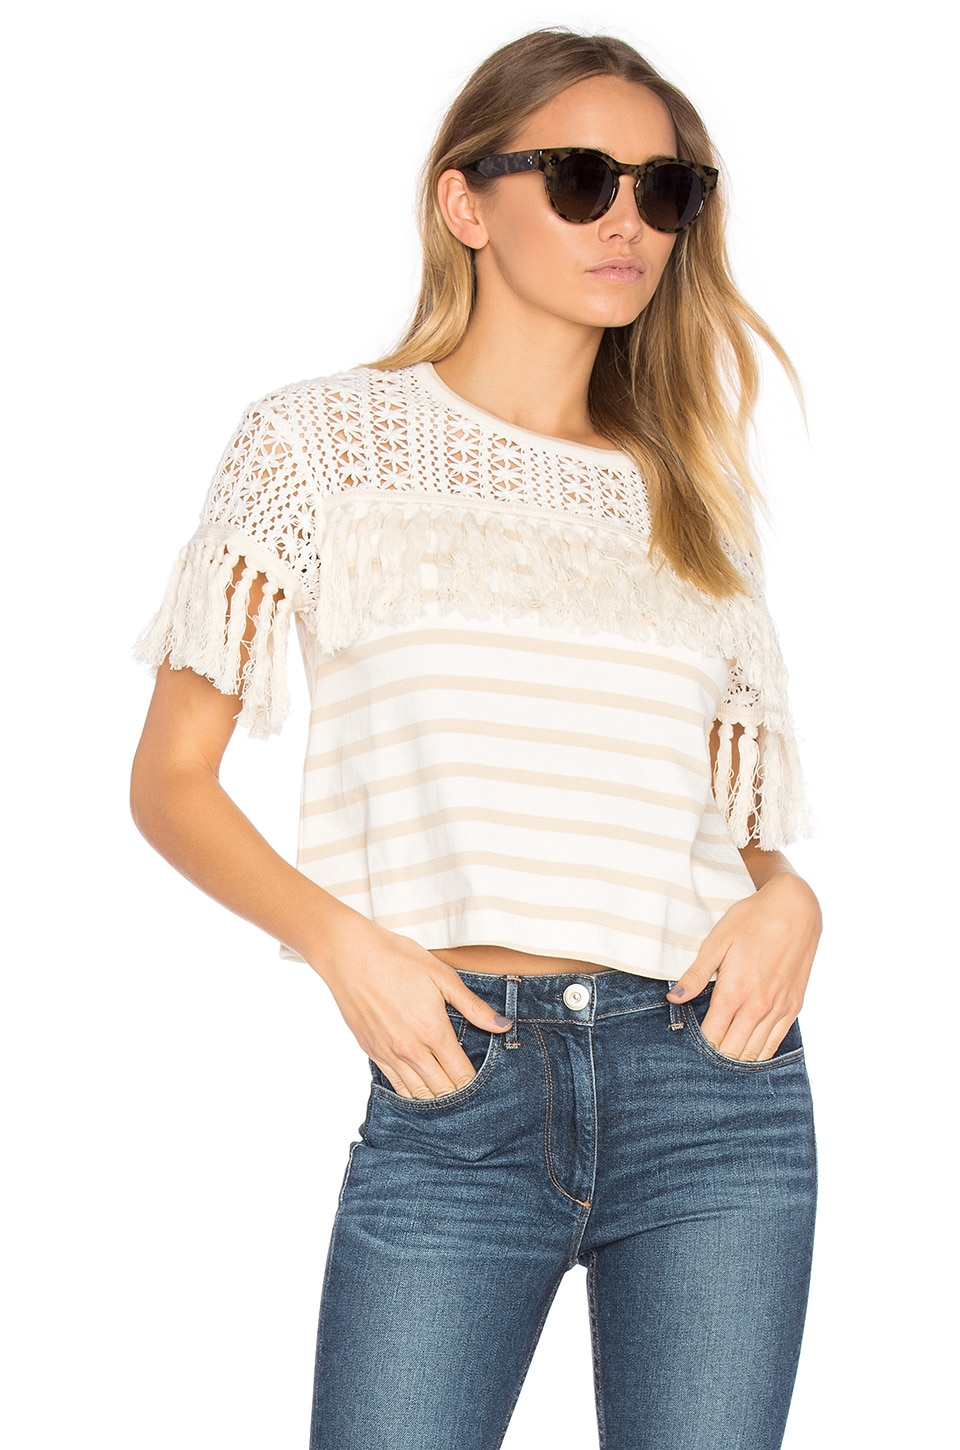 Short Sleeve Fringe Top by See By Chloe